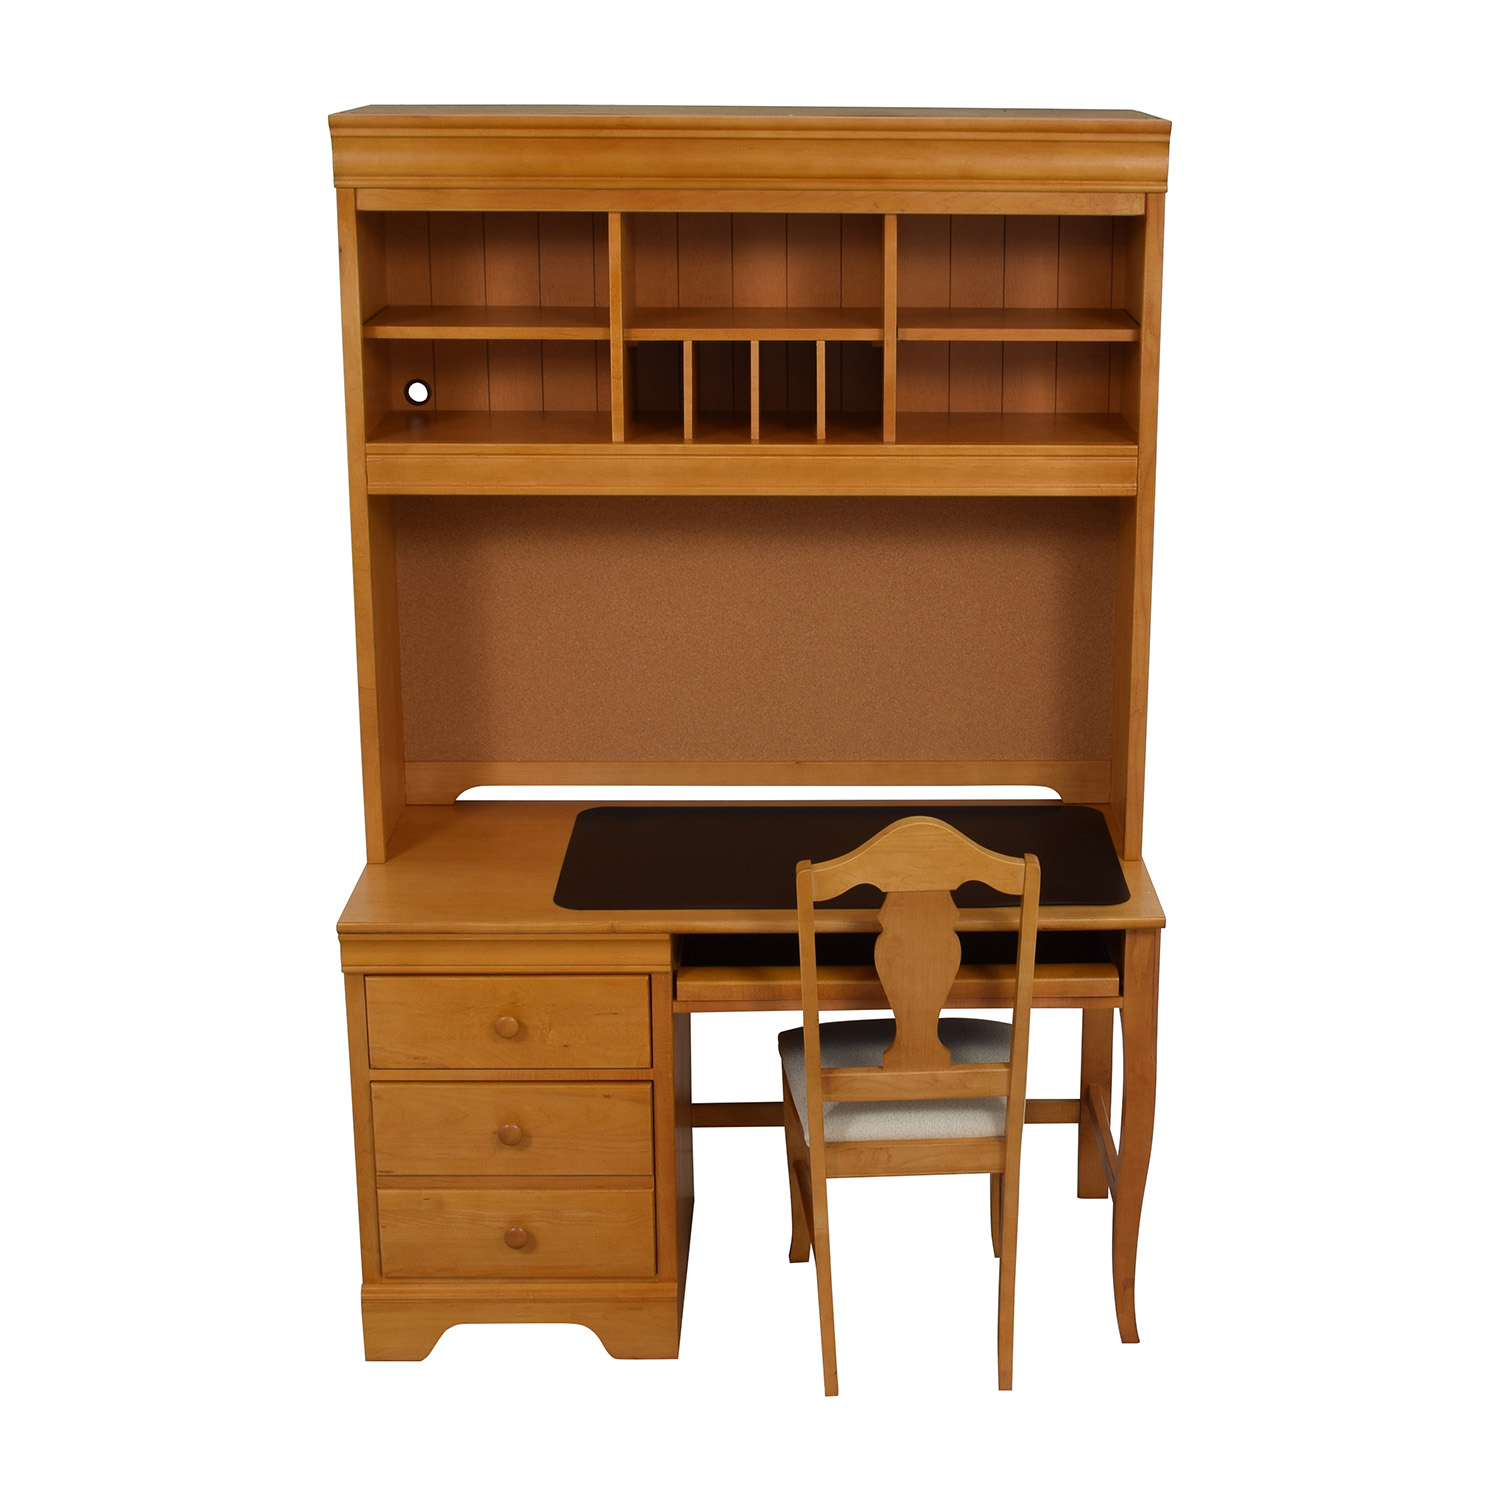 Stanley Furniture Stanley Furniture Custom Oak Wood Desk with Hutch and Chair Home Office Desks